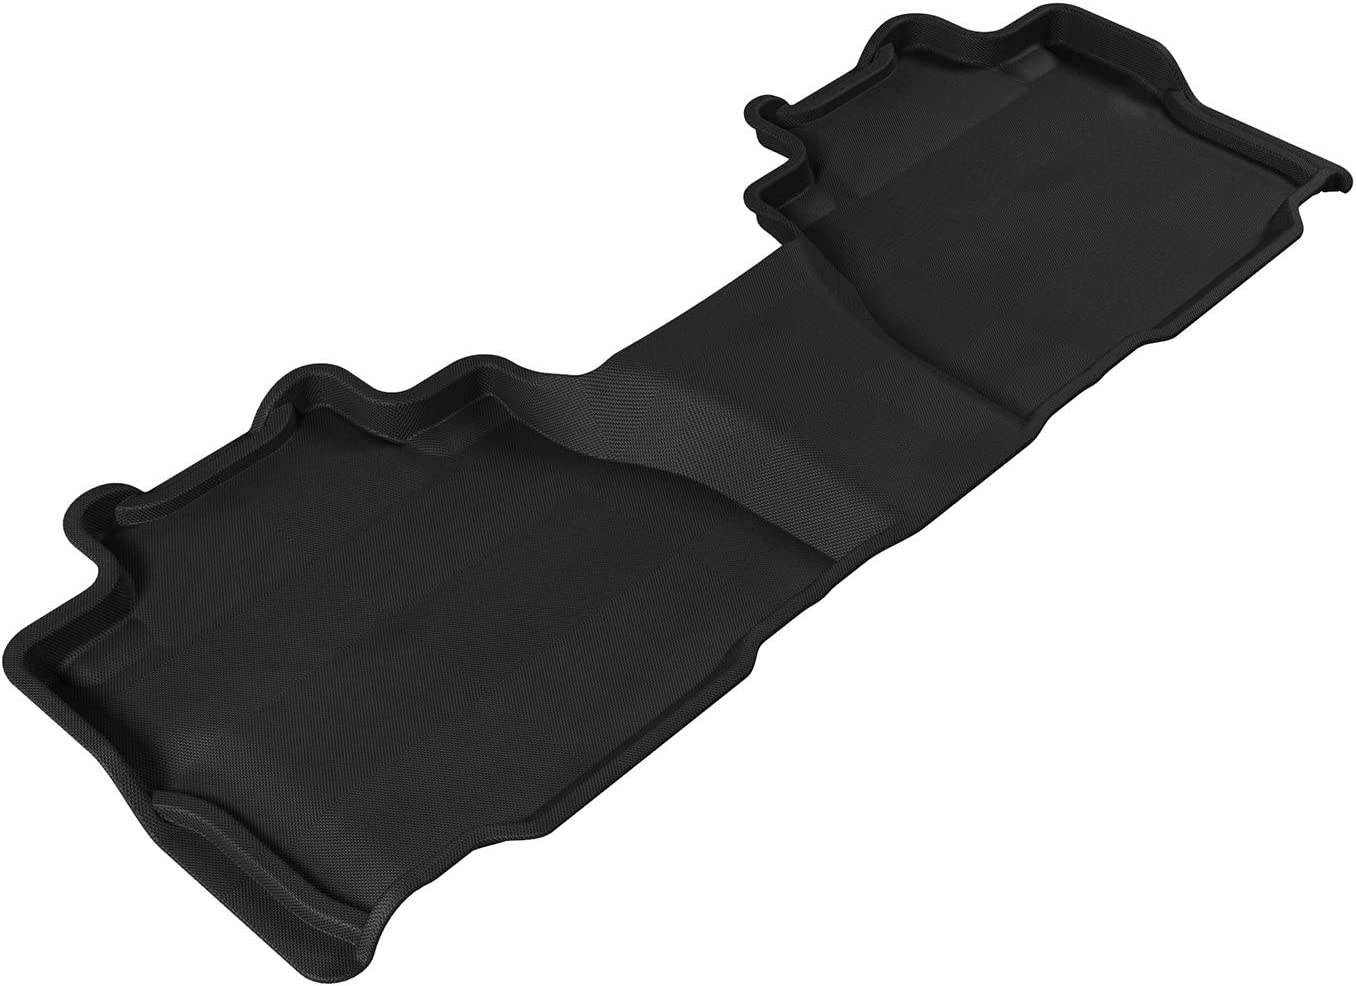 Kagu Rubber Black 3D MAXpider Cargo Custom Fit All-Weather Floor Mat for Select Toyota Sequoia Models